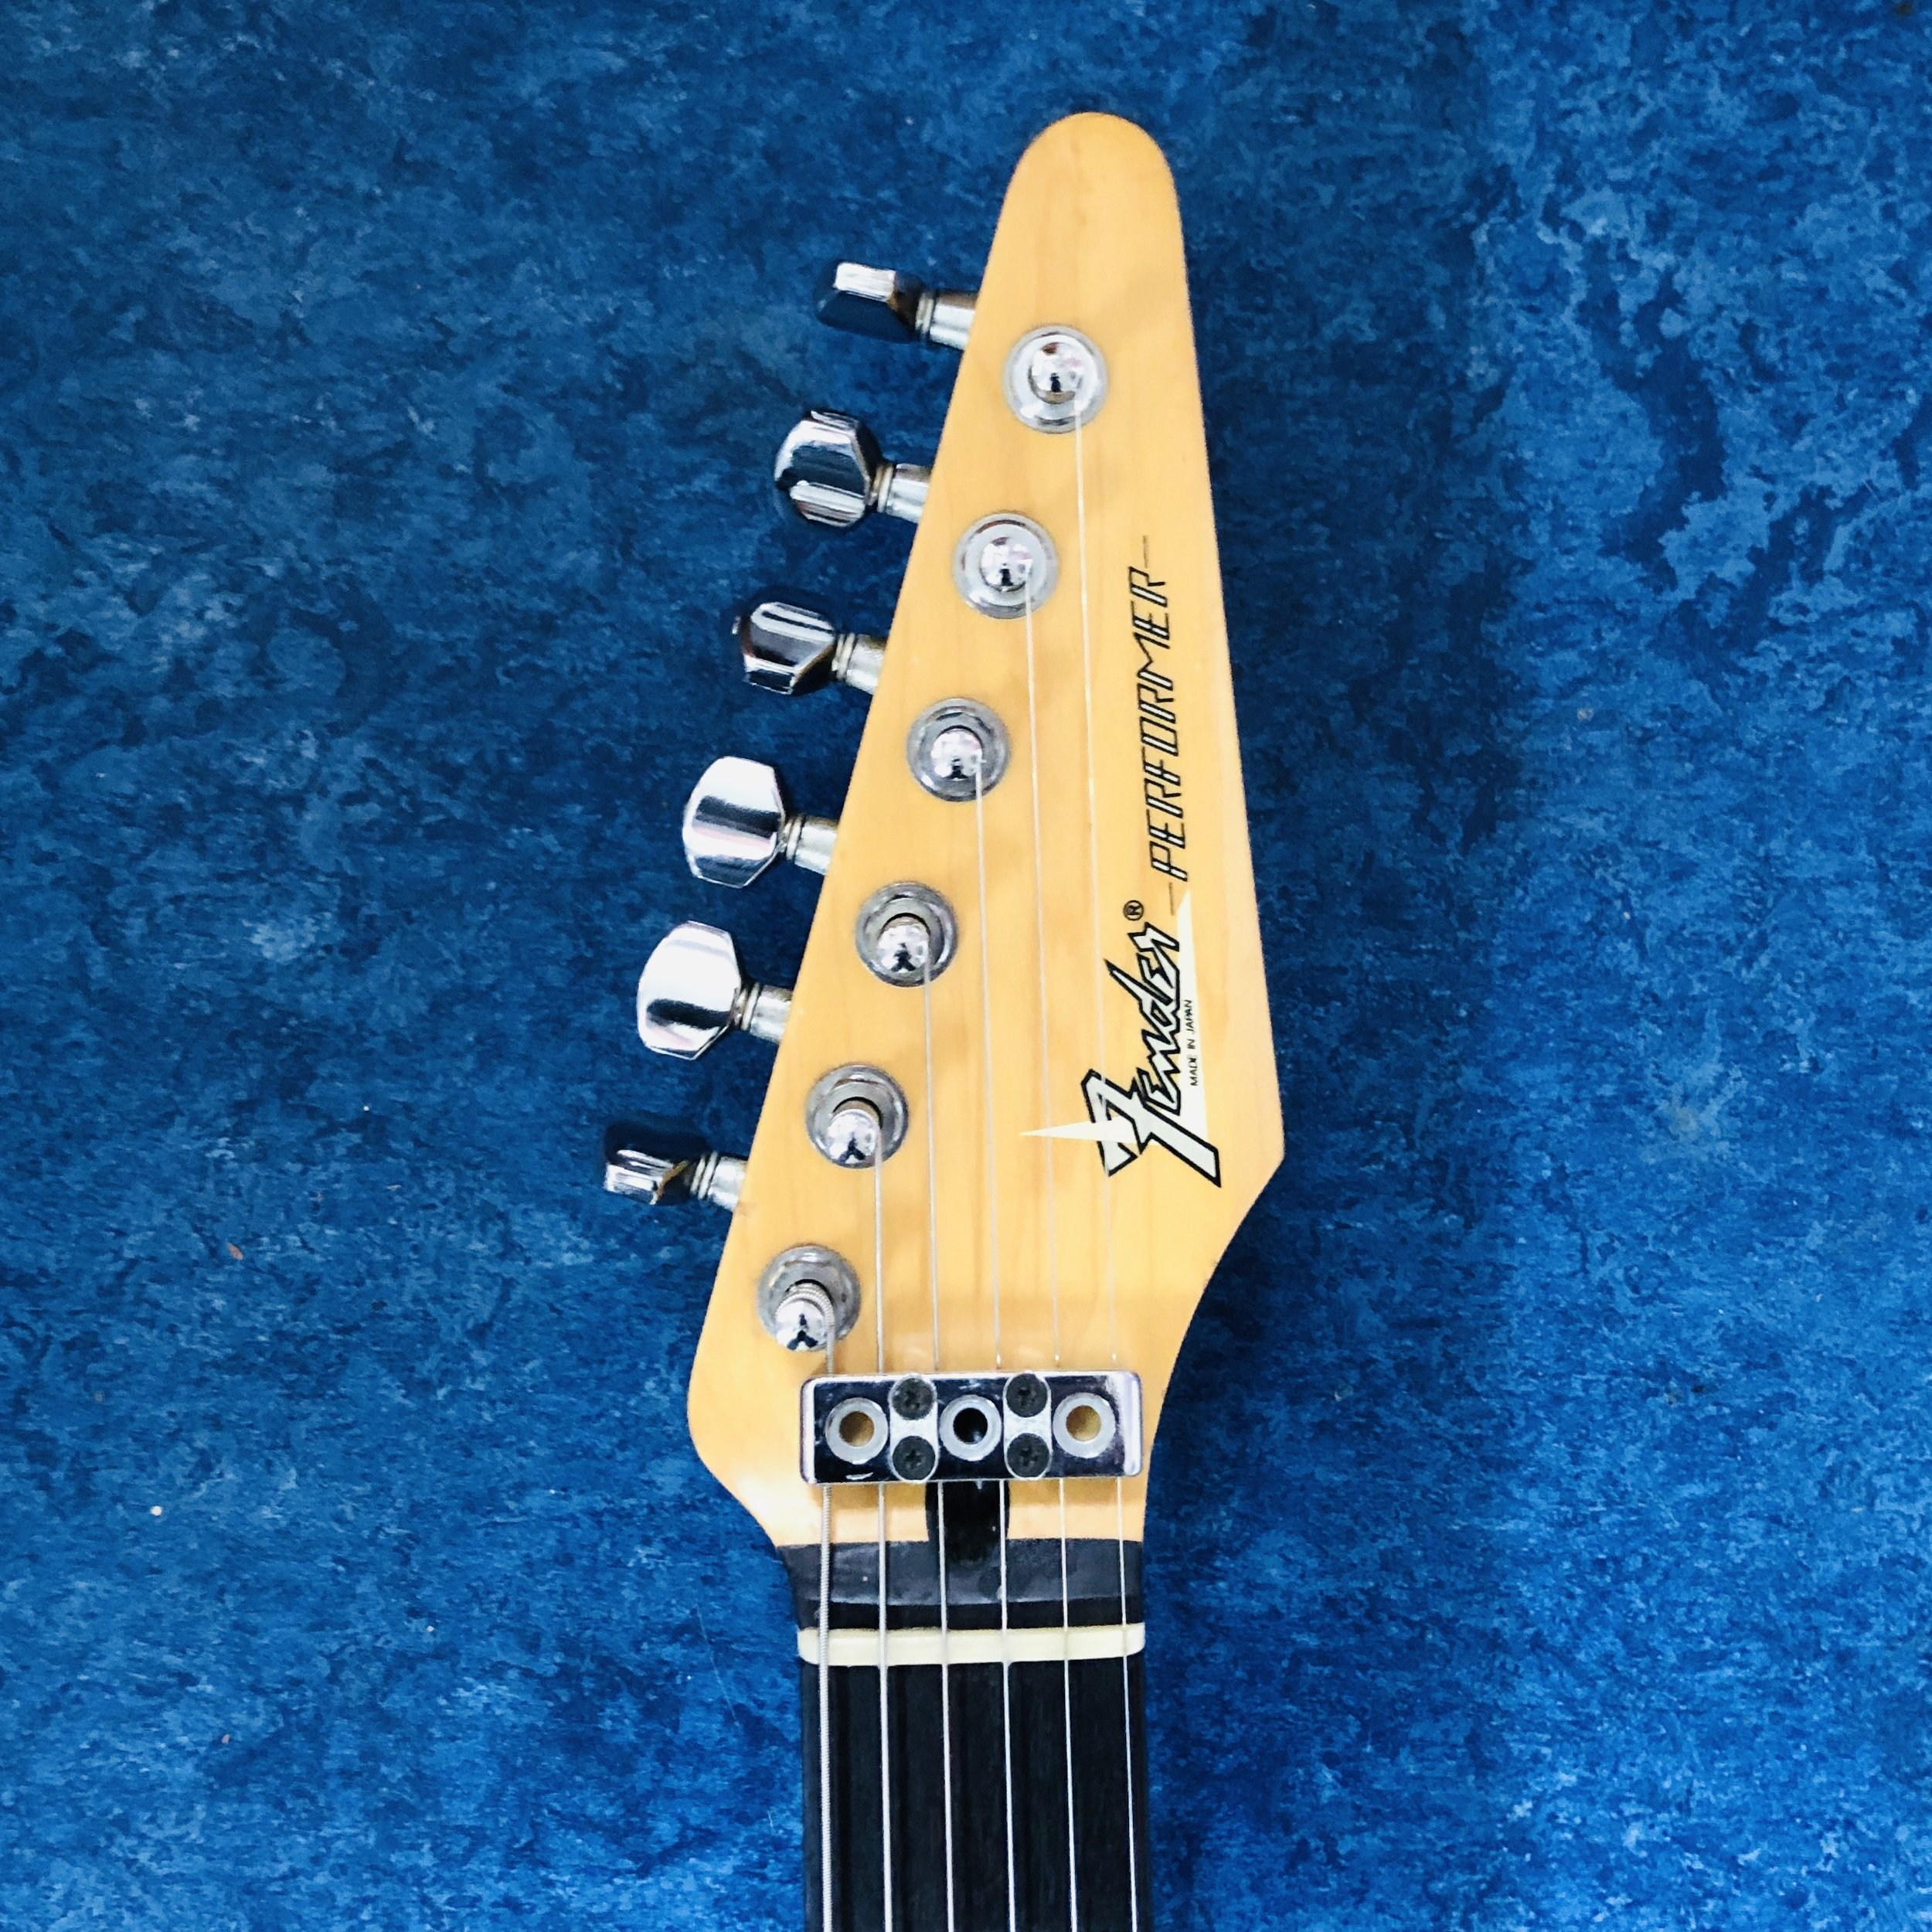 fender-performer-headstock.jpg